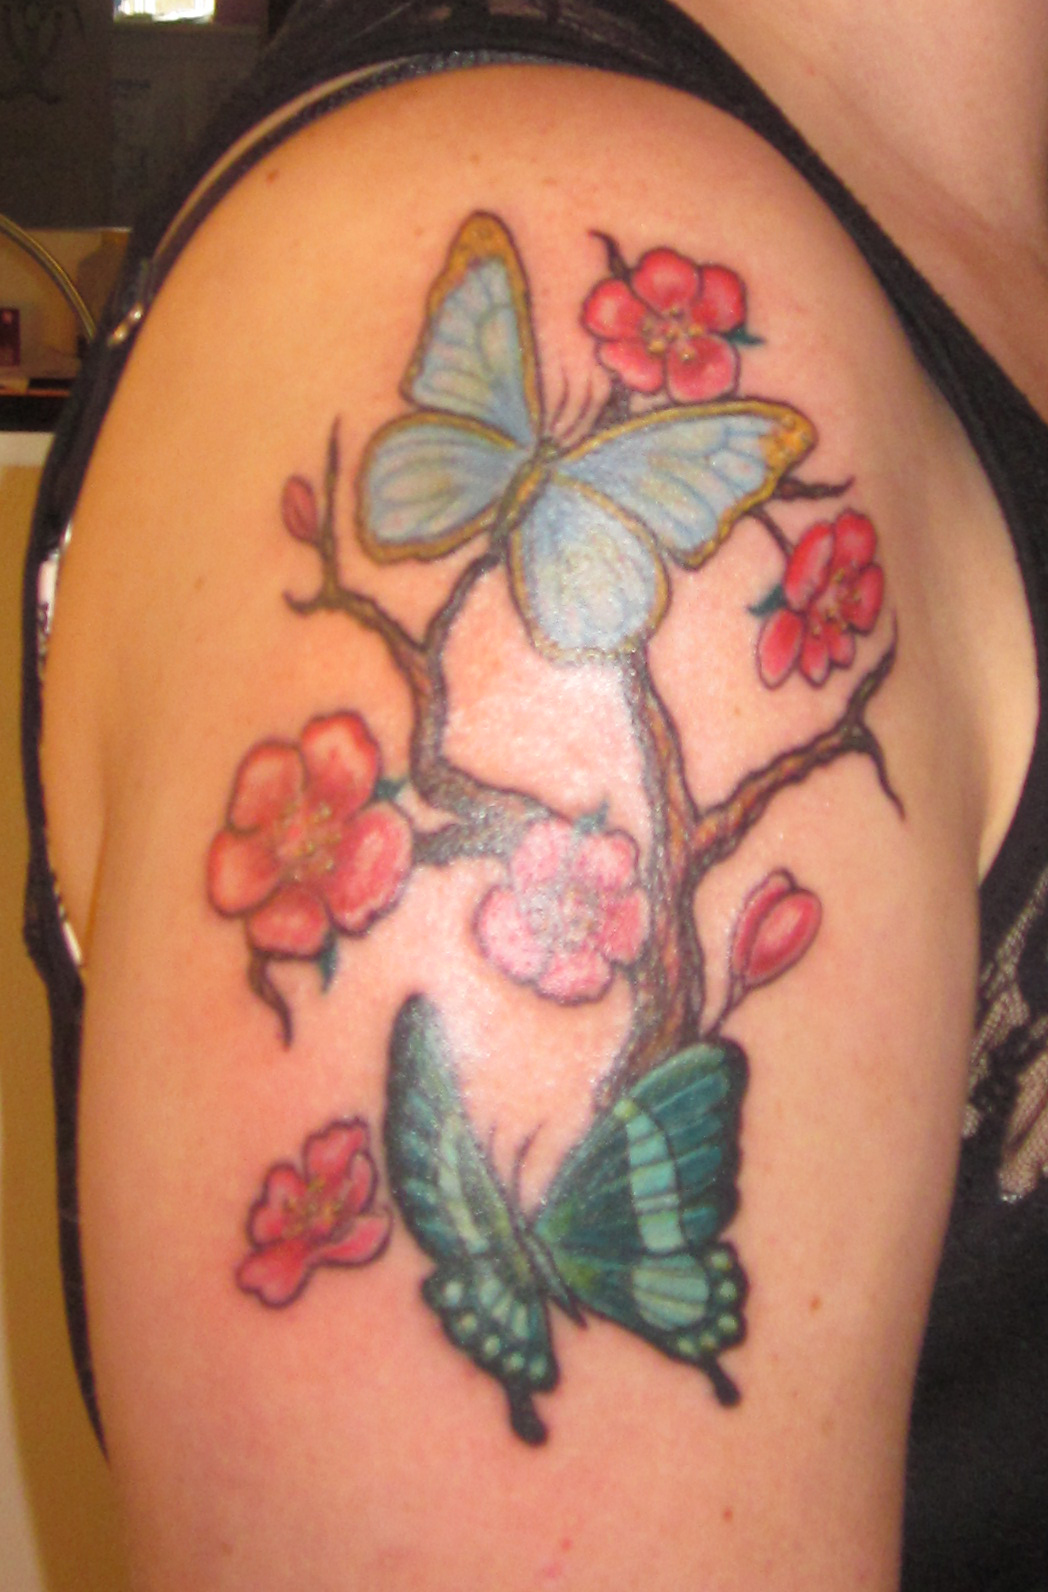 """body essay image piercing tattoo """"the colors and pictures we apply to our skin communicate our values and tattoos vs body piercings essay body piercings, and other body modifications essay."""